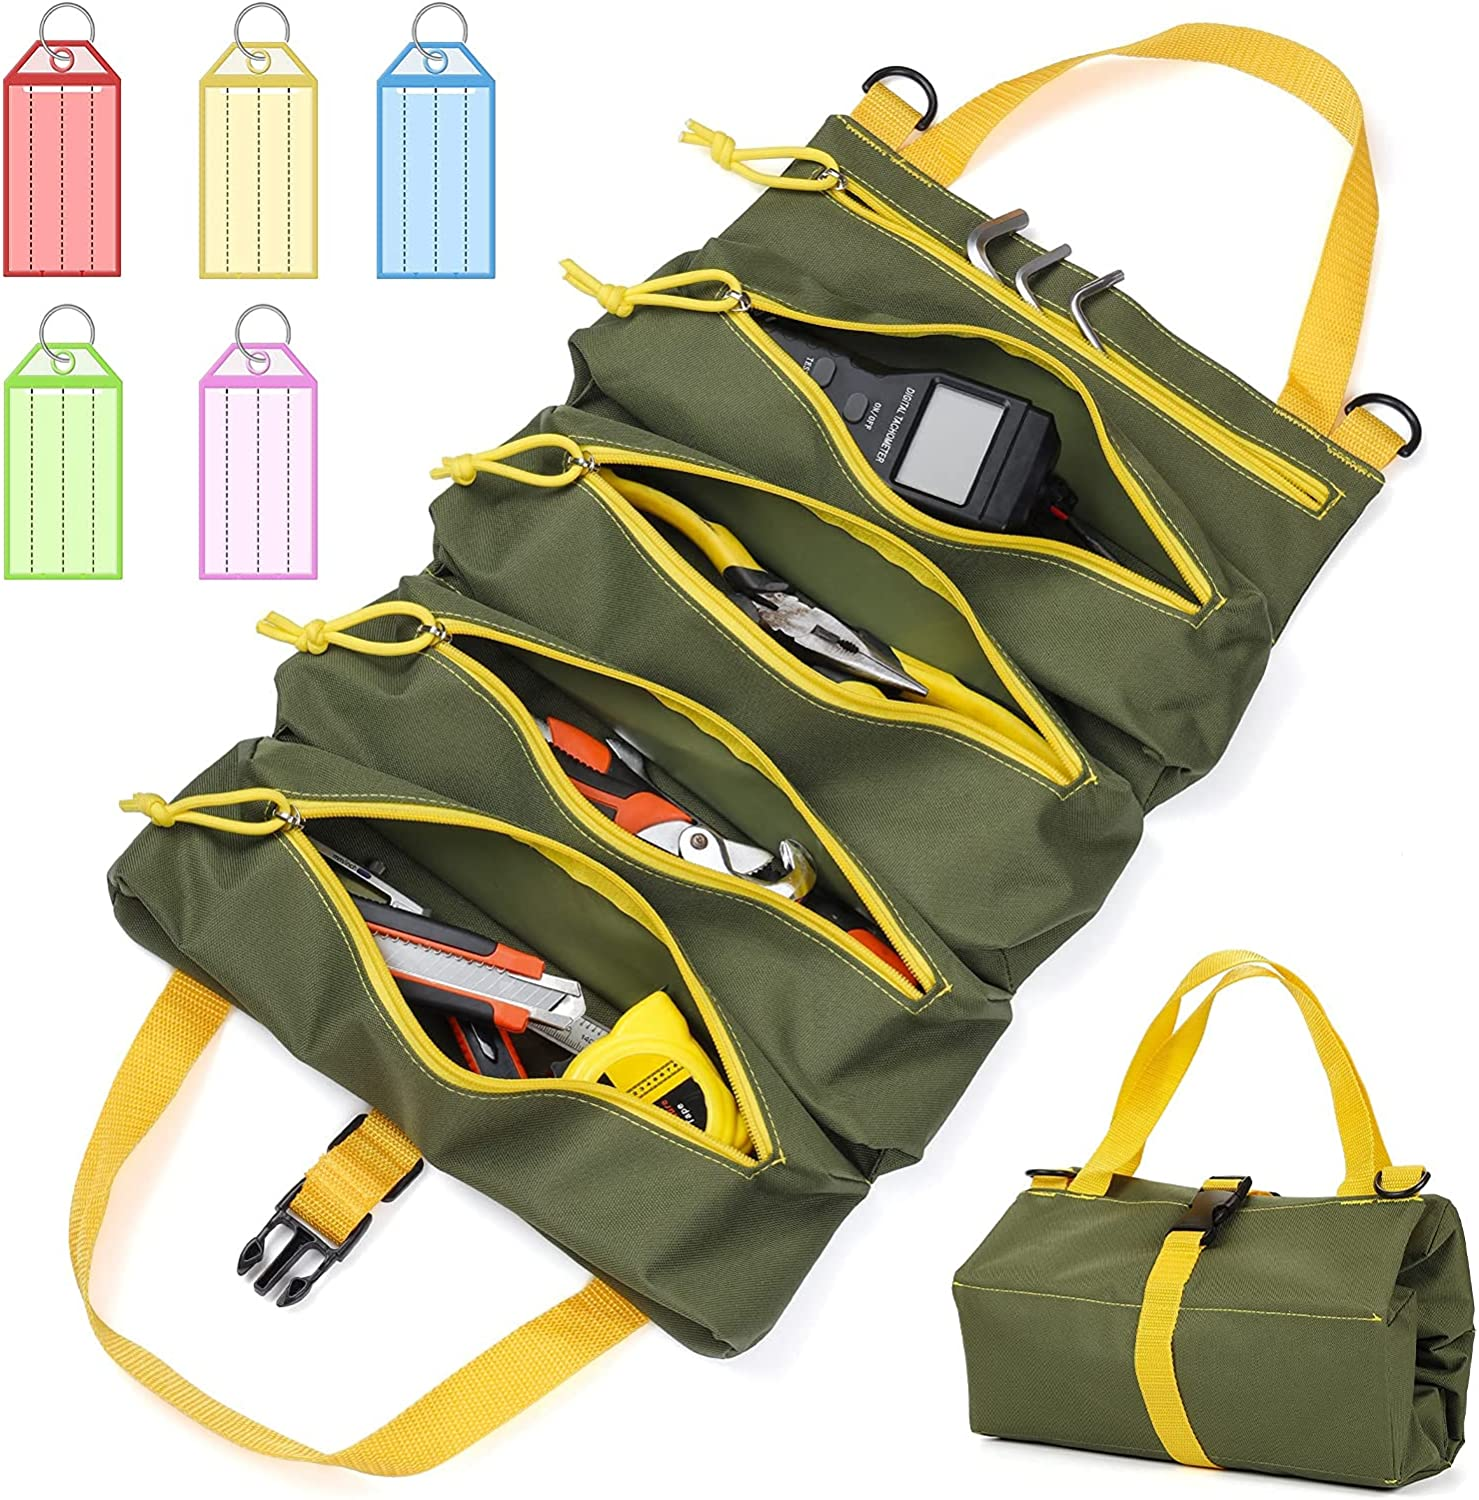 Max 78% OFF SDZFJT Roll Up Tool Bag Heavy Wrenc Duty Waterproof Canvas Max 58% OFF